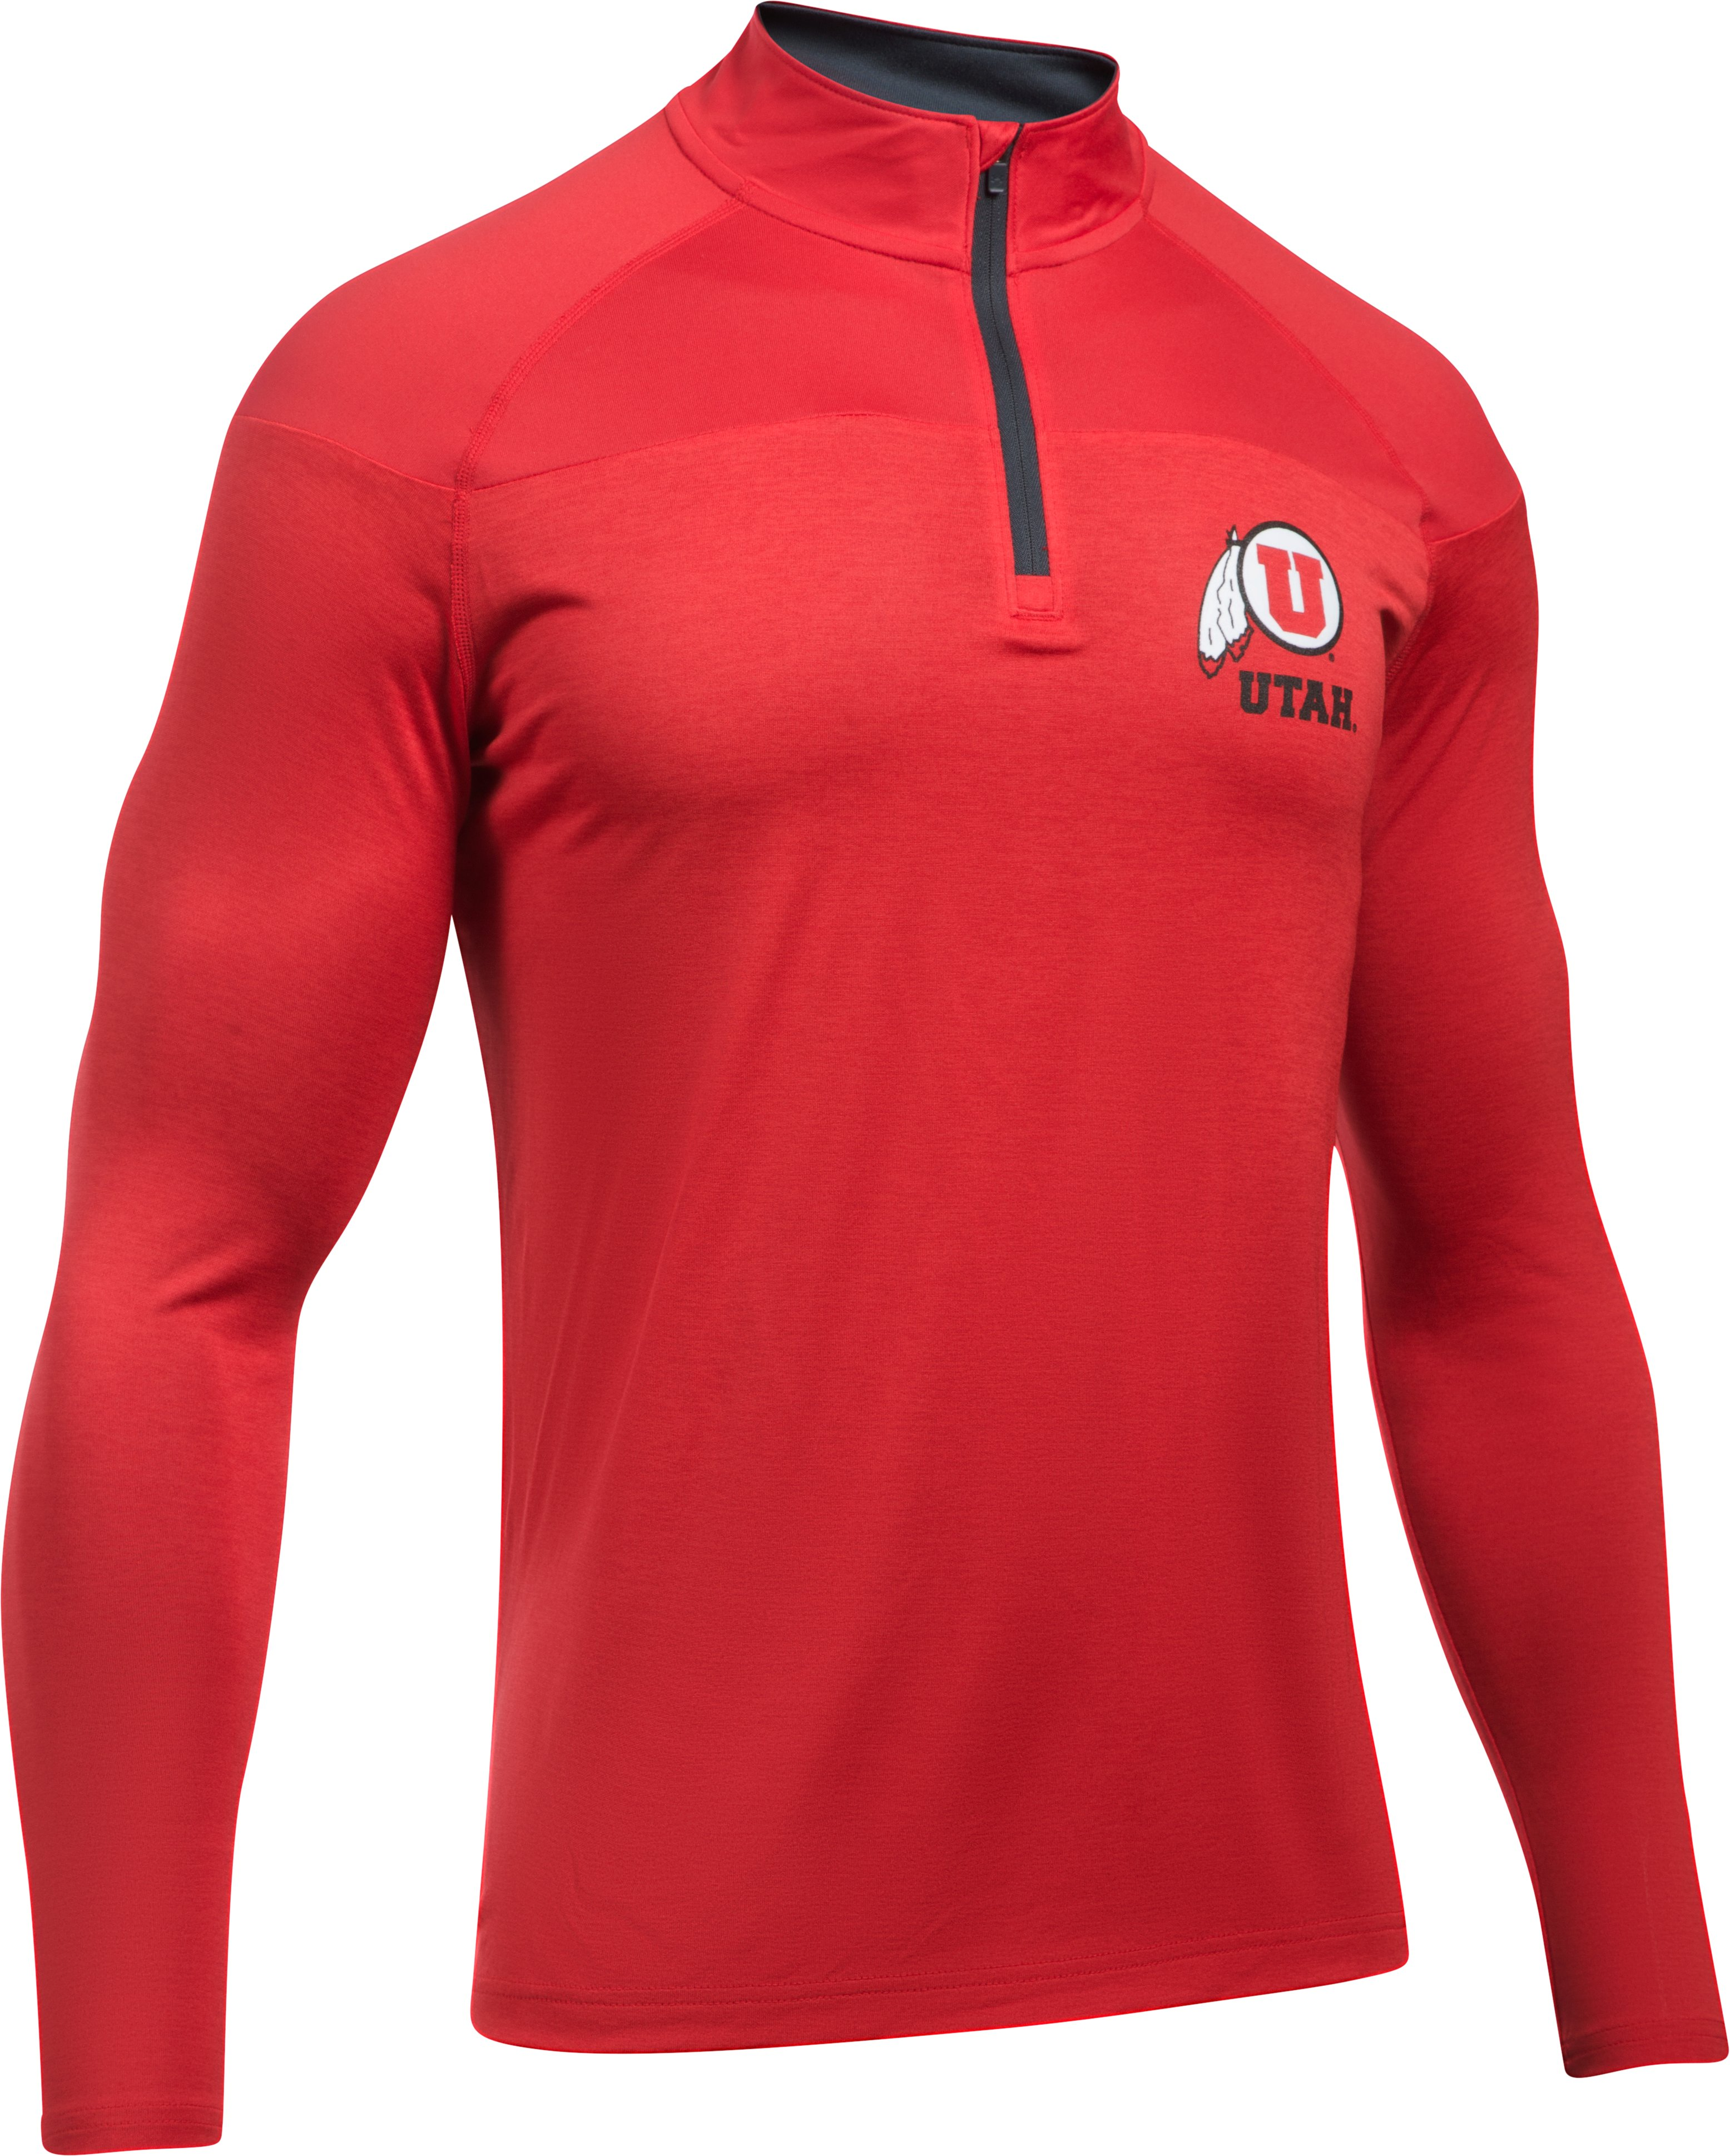 Men's Utah Printed ¼ Zip, Red,